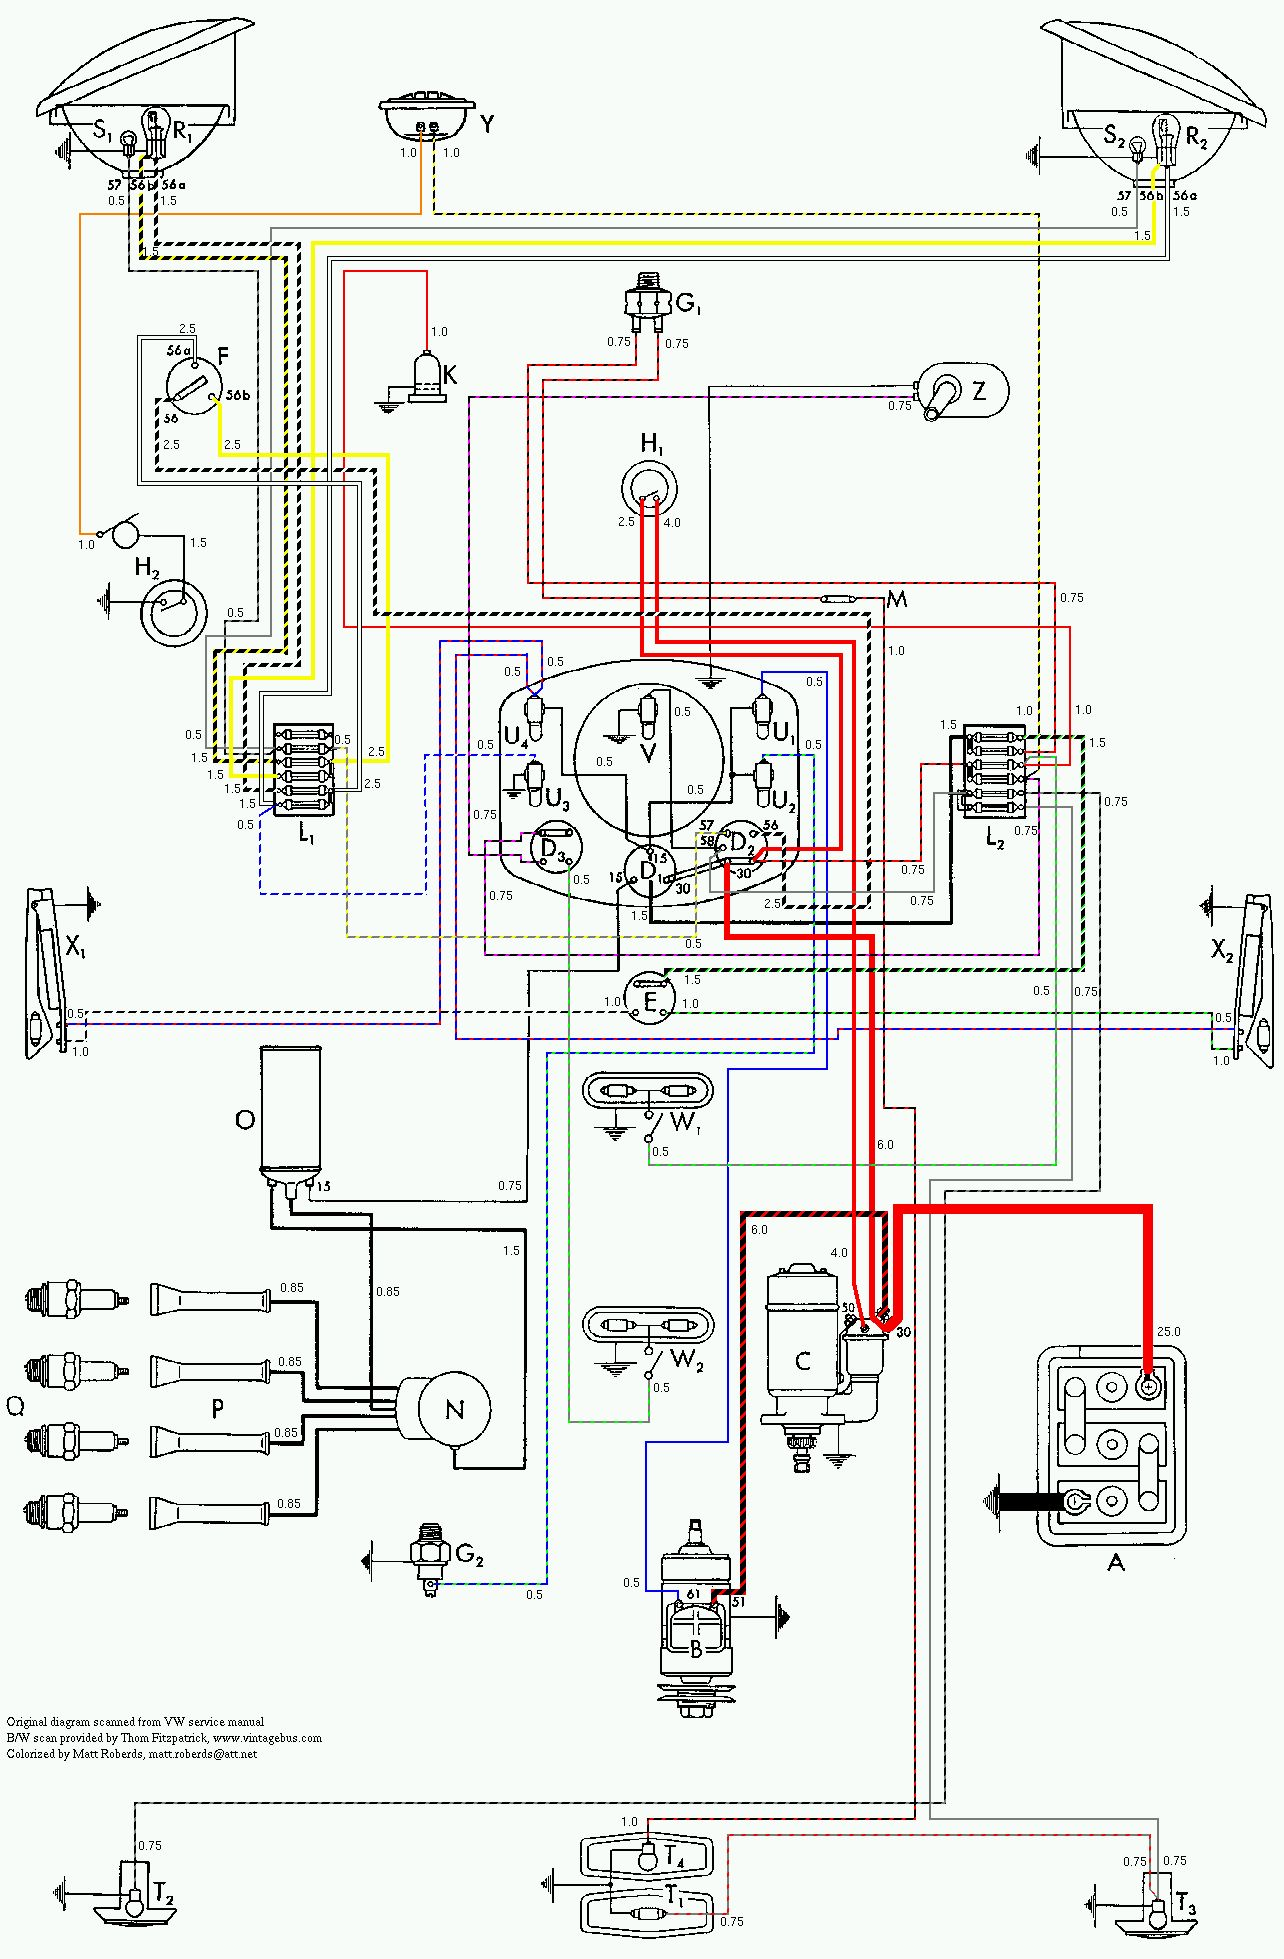 bus 53 color vintagebus com vw bus (and other) wiring diagrams vanagon alternator wiring harness at soozxer.org